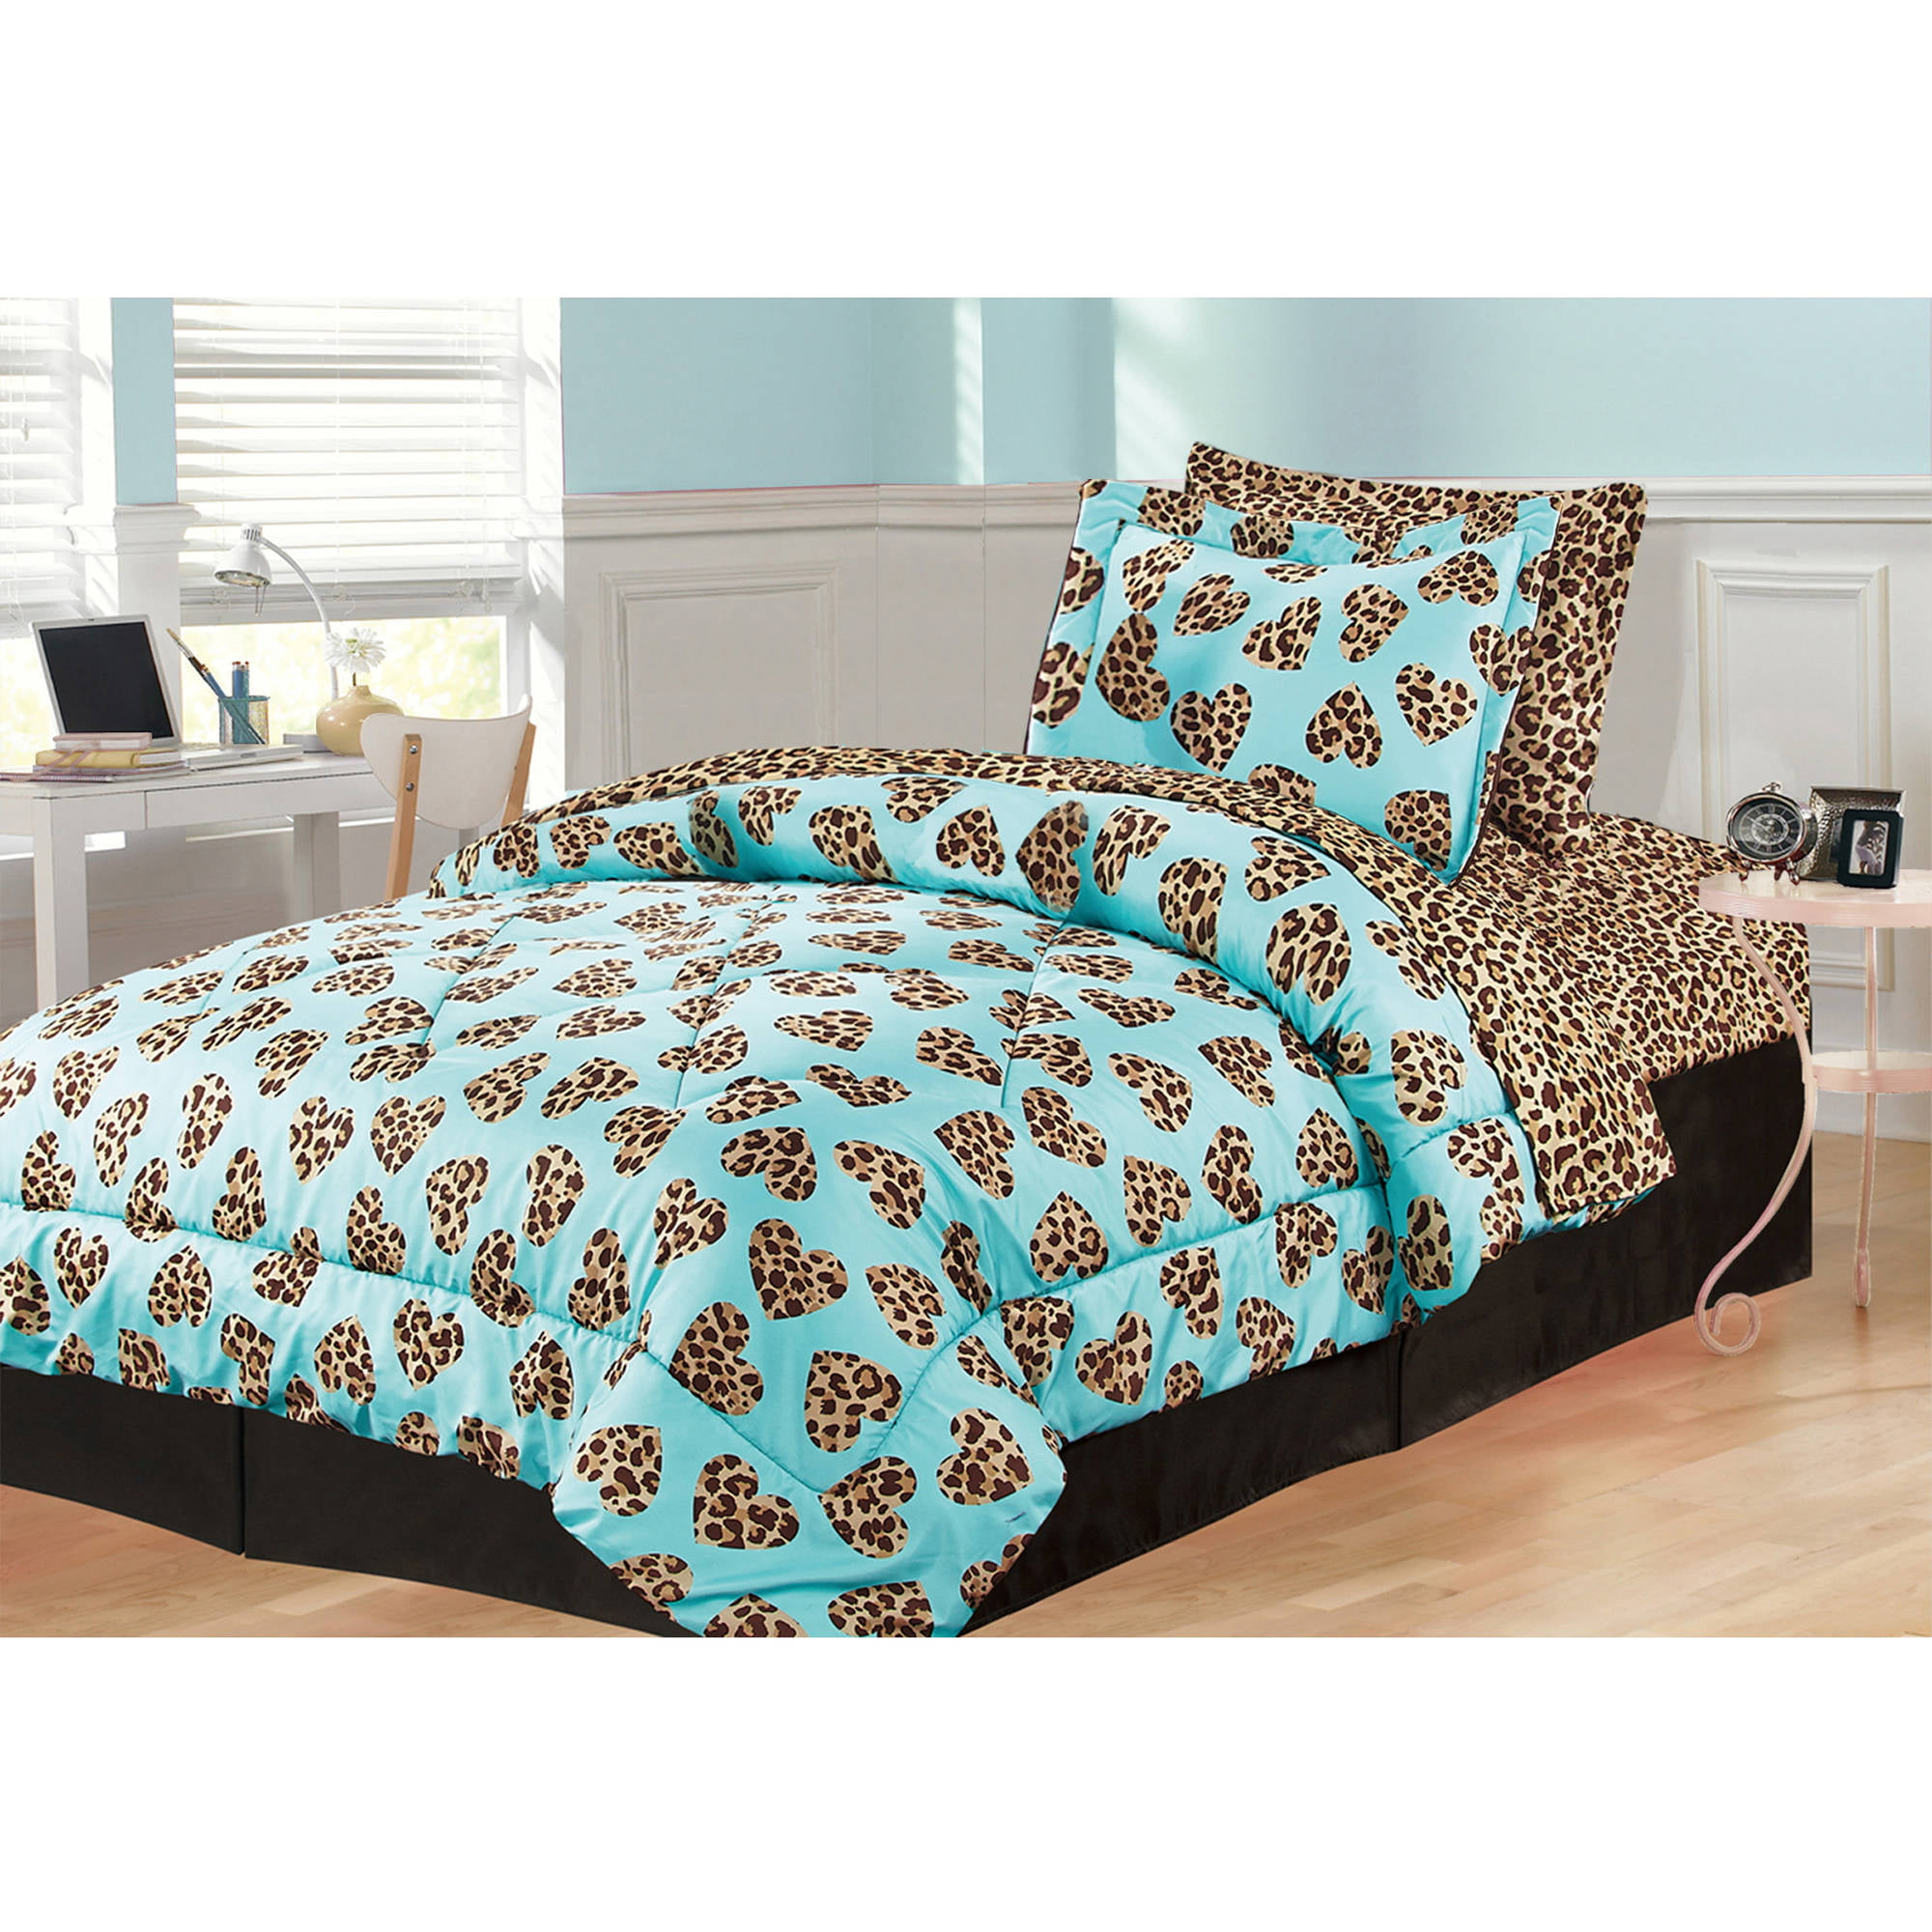 Your Zone I Heart Cheetah Comforter Set   Walmart.com